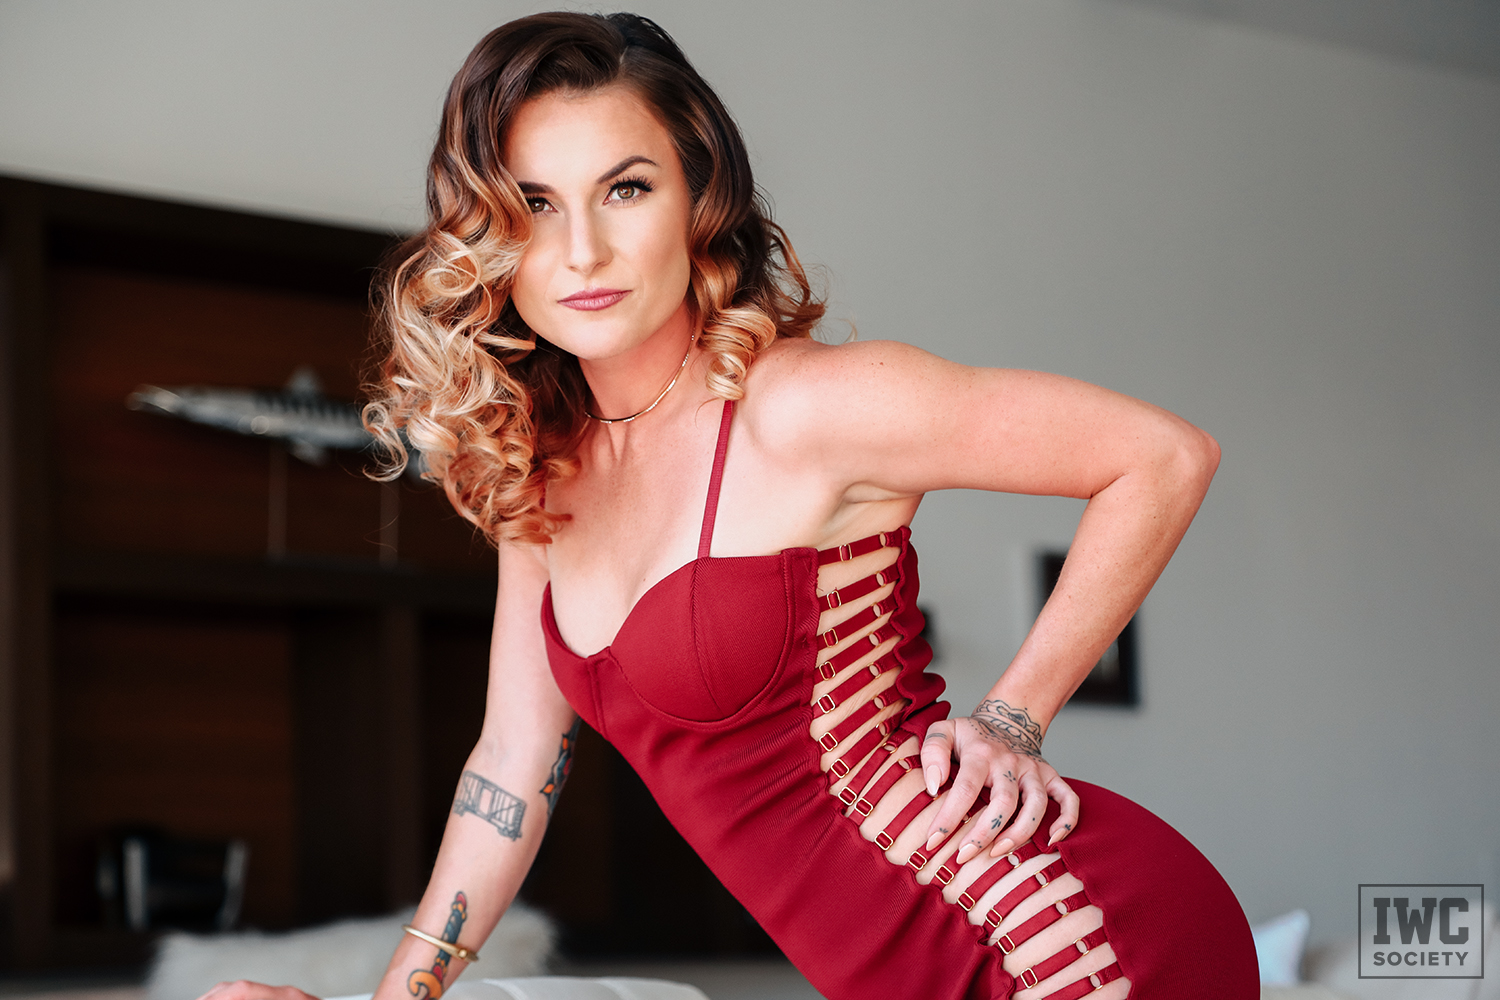 Findomme Goddess Emerald posing in a sexy red dress with curled hair and an intense look in her eyes